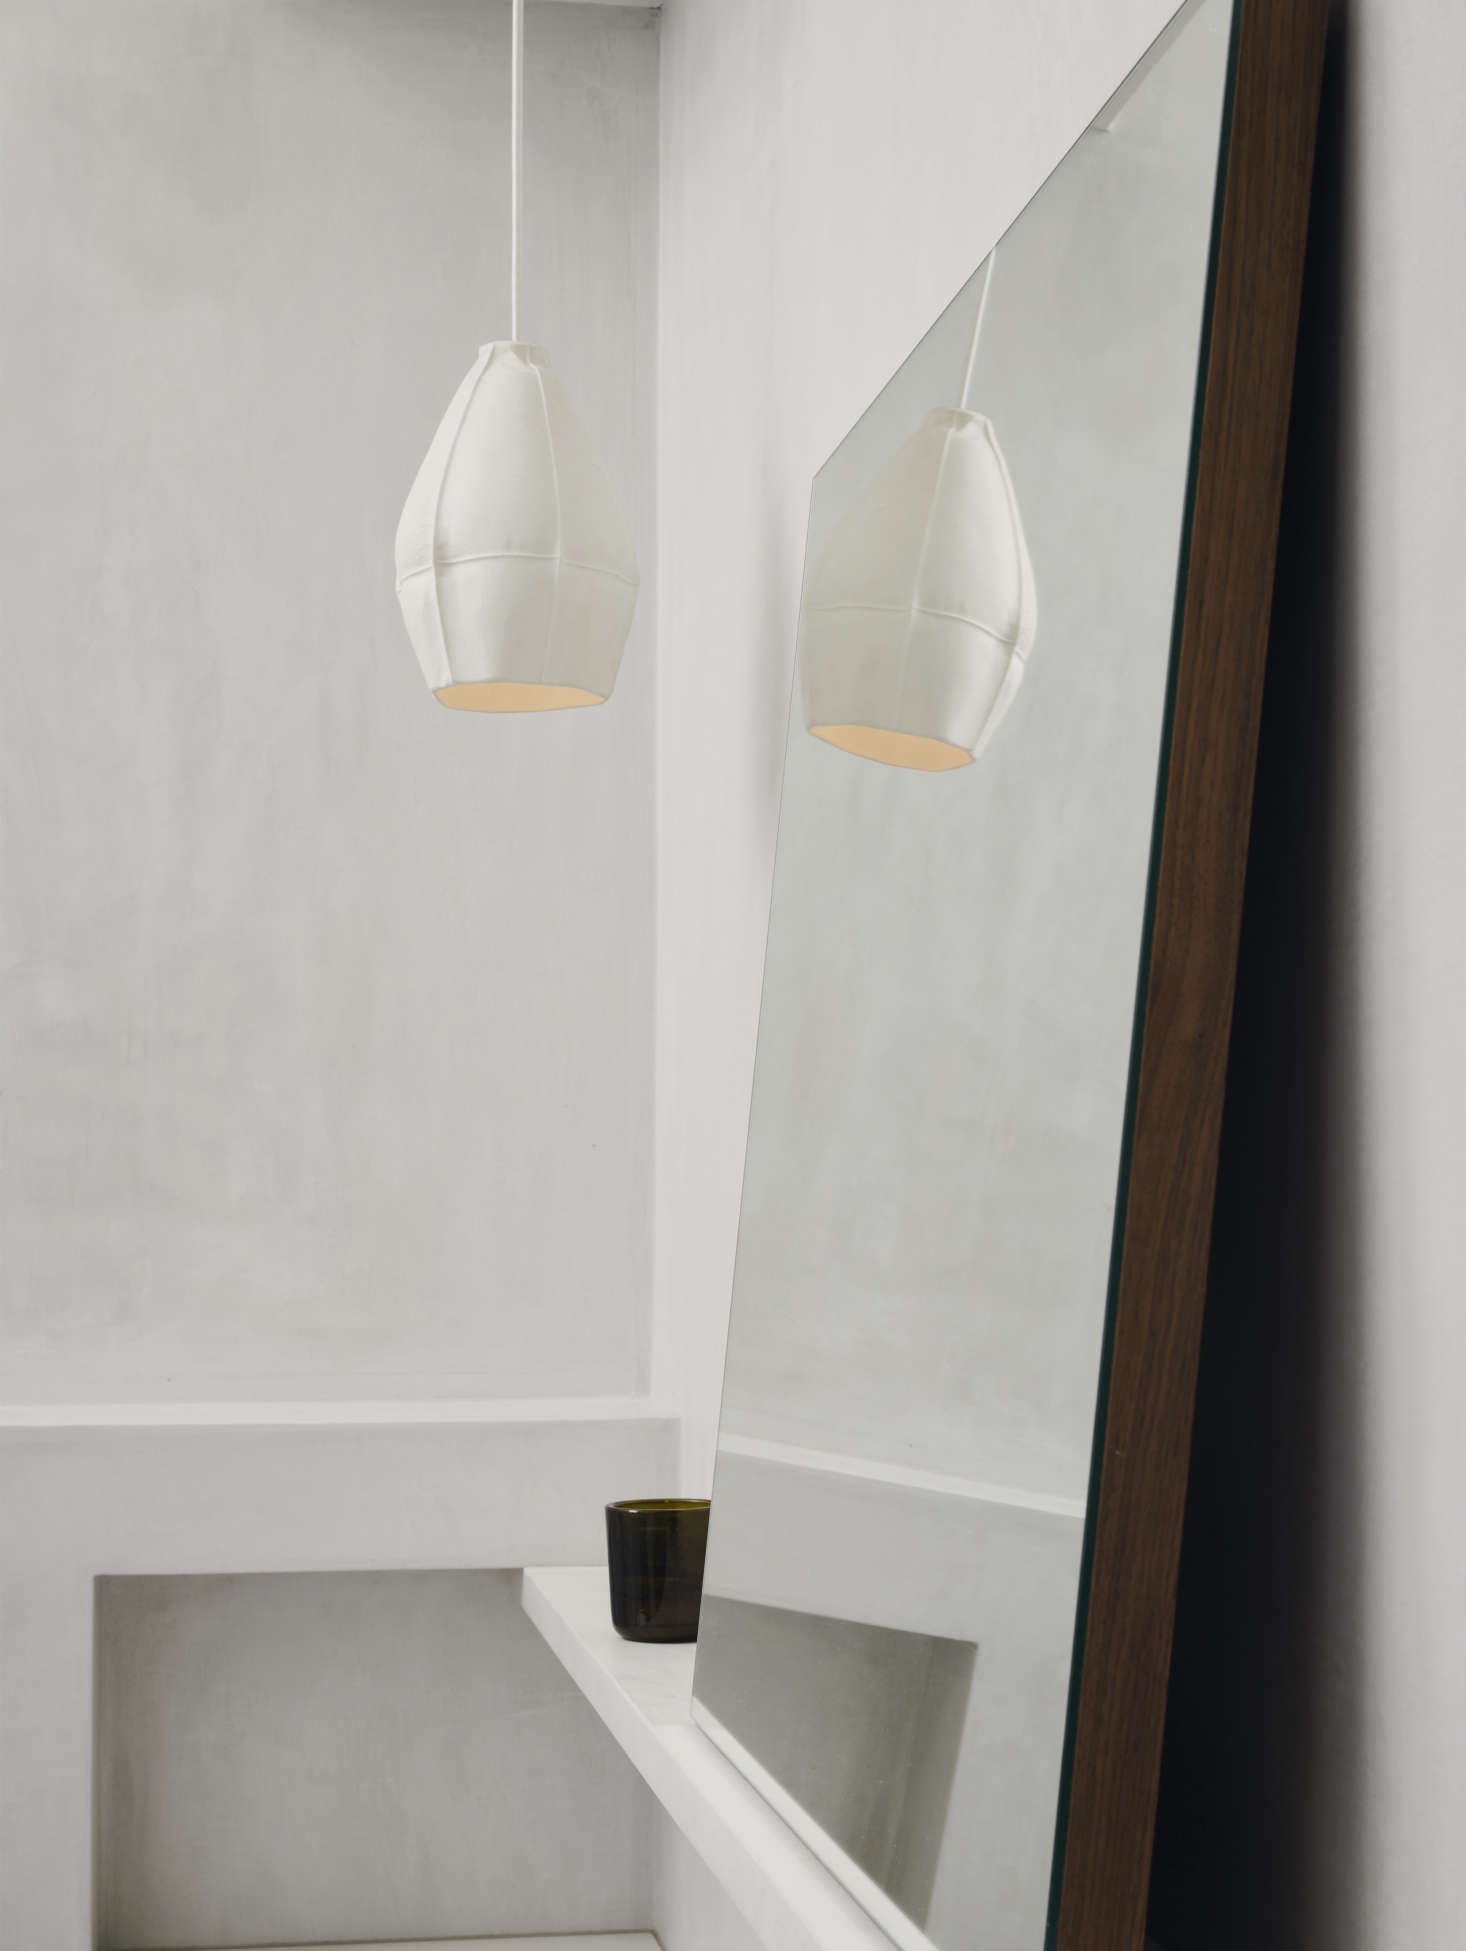 Vintage white plaster wall finish bathroom with pendant light and mirror